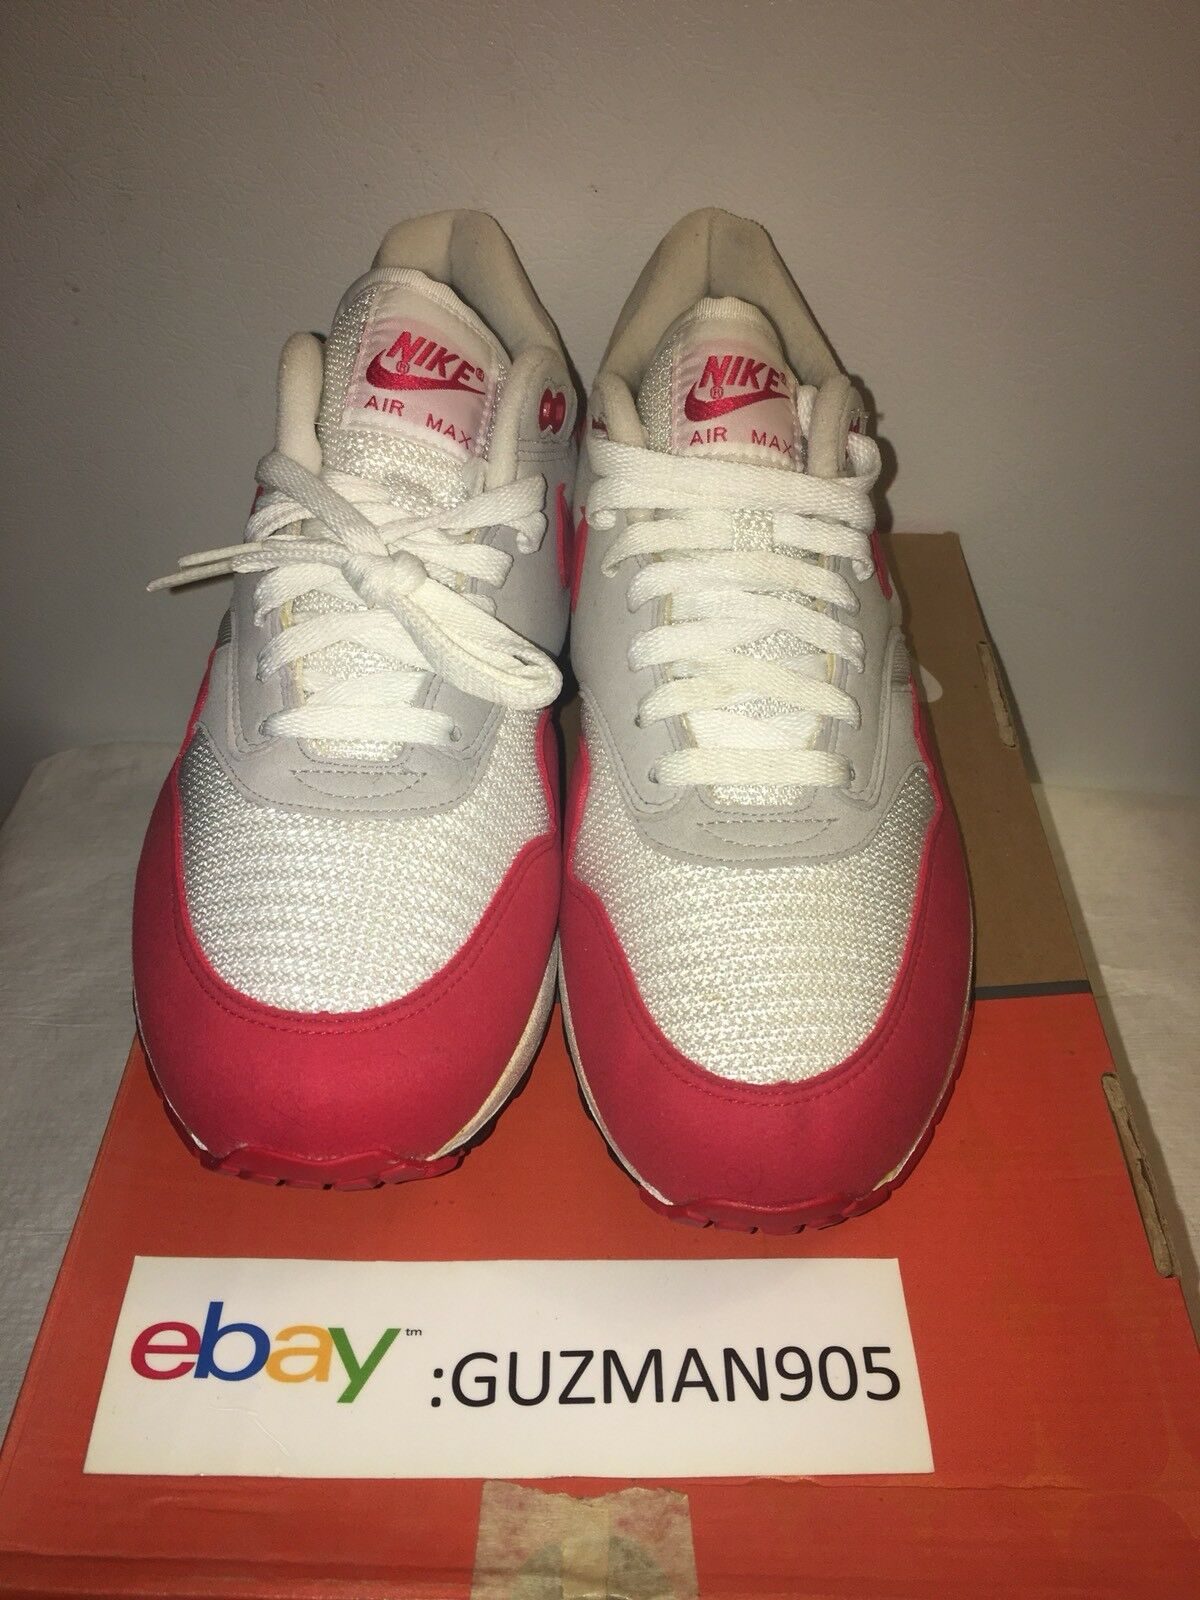 2005 Nike Air Max 1 Classic HOA Varsity Rouge Taille 9 313097 161 Patta Atmo Mesh 87